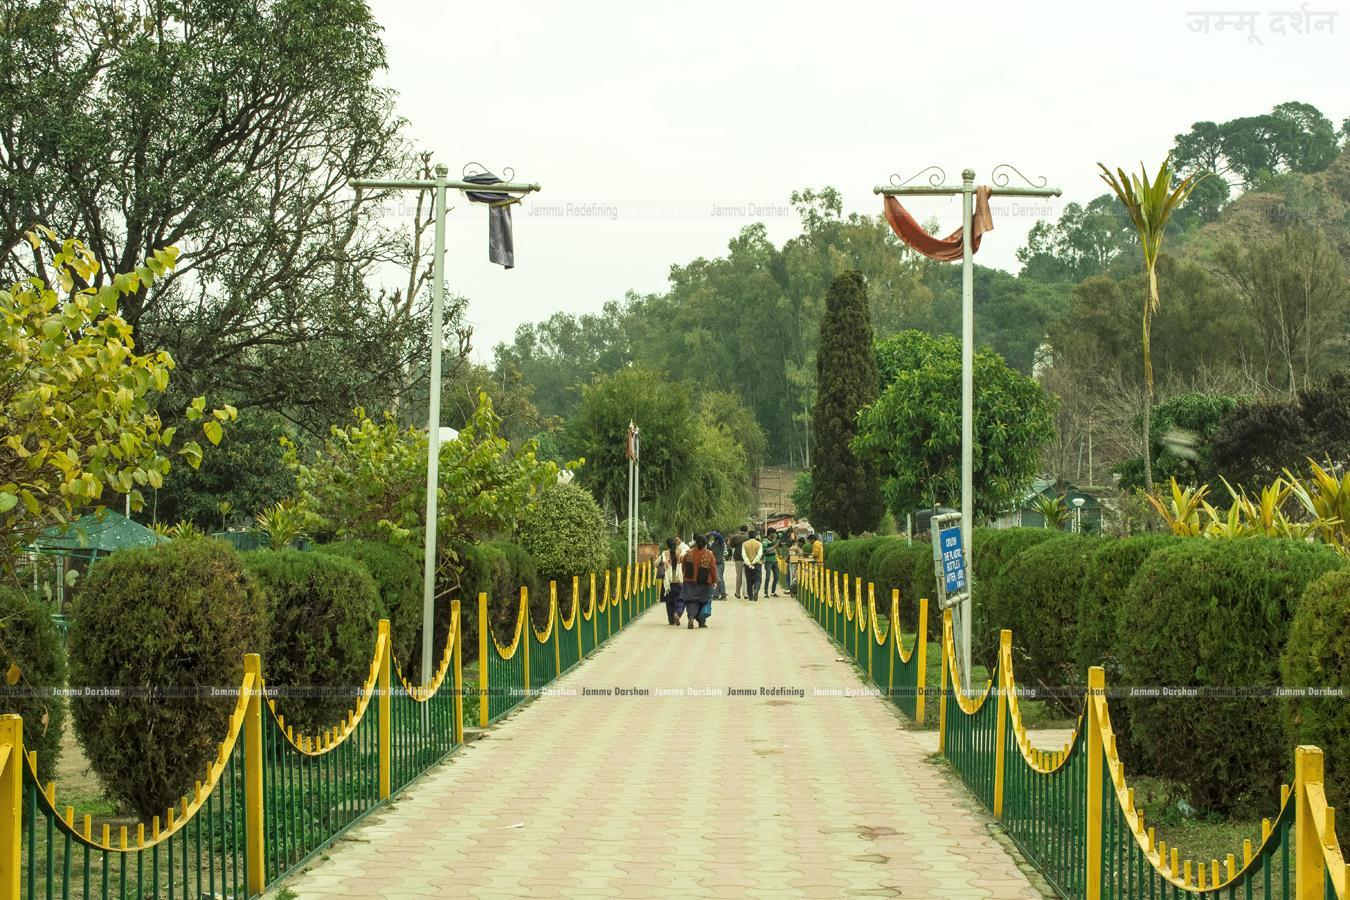 Walk-way- Mansar